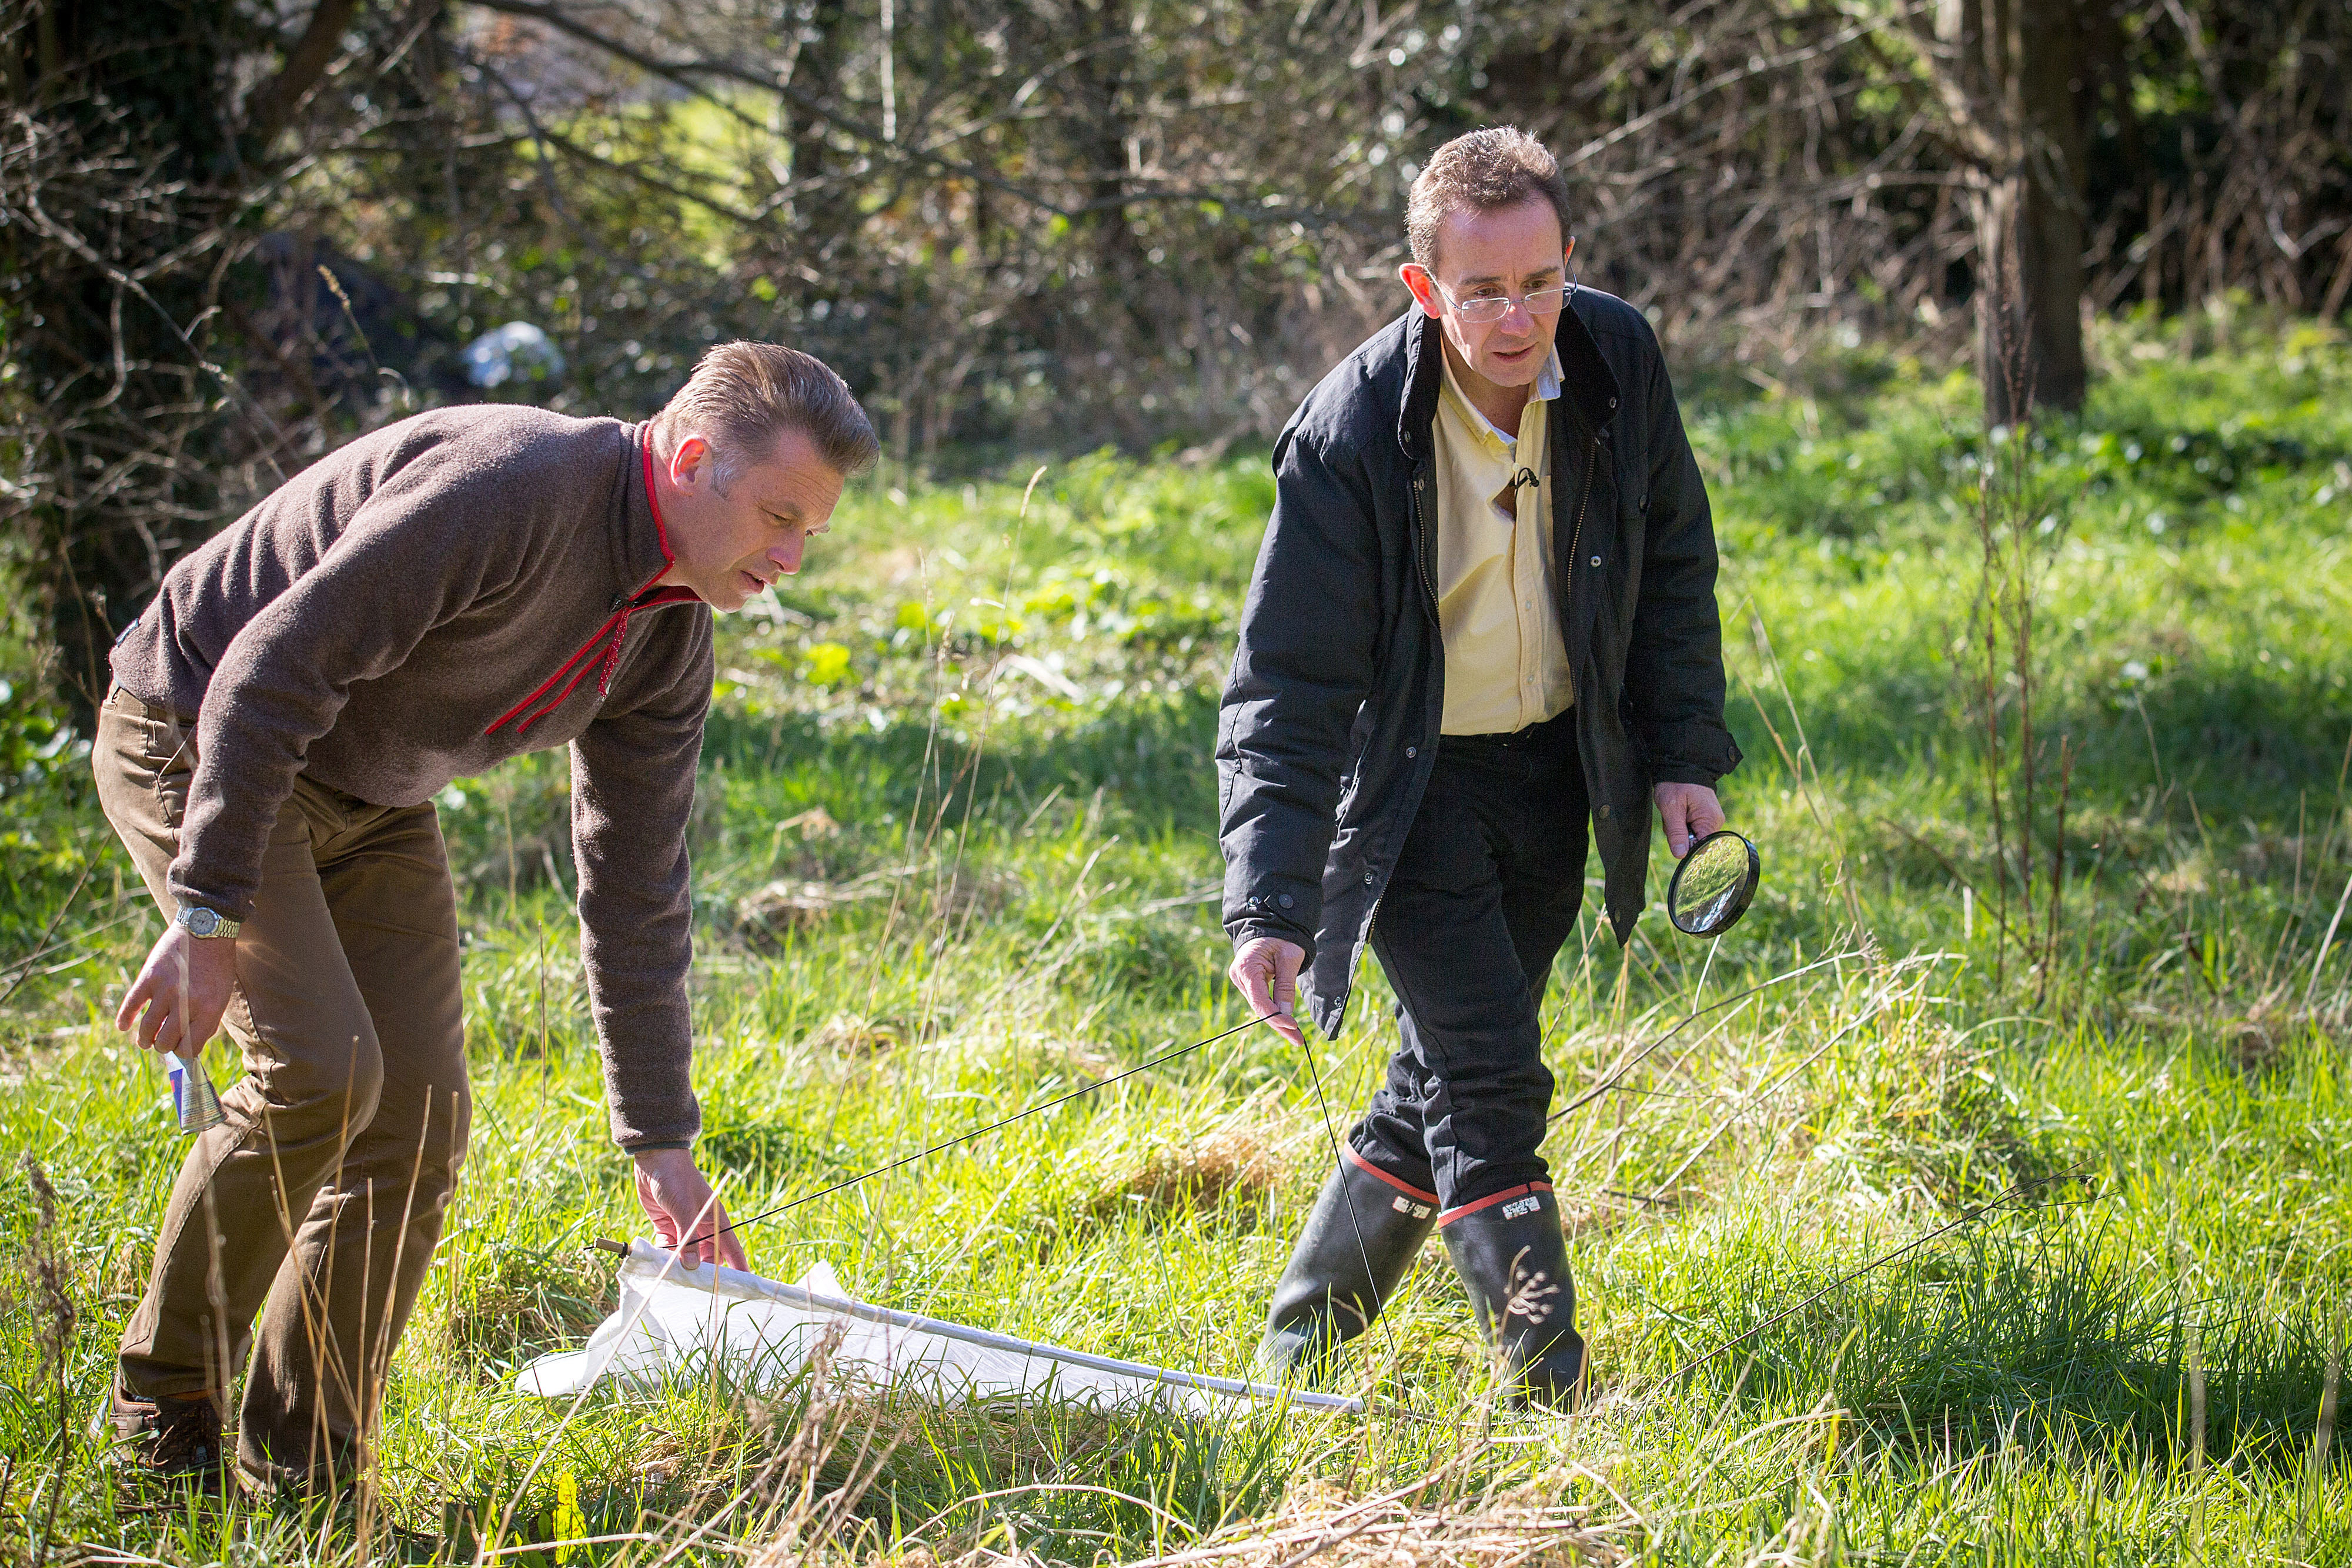 SENT UNDER EMBARGOED FOR FIRST USE 16 MARCH 2016 00.01 Chris Packham and Prof Richard Wall, photographed as they search for ticks that have been infecting dogs in the Harlow area. See SWNS story SWTICK; Scientists are warning of the spread of the fatal dog tick disease babesiosis after 3 out of 4 infected canines died in an outbreak in Essex. The parasite, which affects thousands of dogs every year in France is extremely rare in the UK but now a massive survey of the bugs by wildlife expert Chris Packham has revealed for the first time that British dogs are in danger from the killer parasite. Presence of Babesia canis in UK raises need for surveillance says Big Tick Project leader Professor Richard Wall ? University of Bristol is currently analysing 1000s of ticks collected by veterinary practices as part of MSD Animal Health's Big Tick Project ? Big Tick Project study is mapping tick hotspots to identify disease risks. It is hoped that the results of the study will powerfully highlight the challenge that an increasing distribution and prevalence of ticks brings to human and animal health